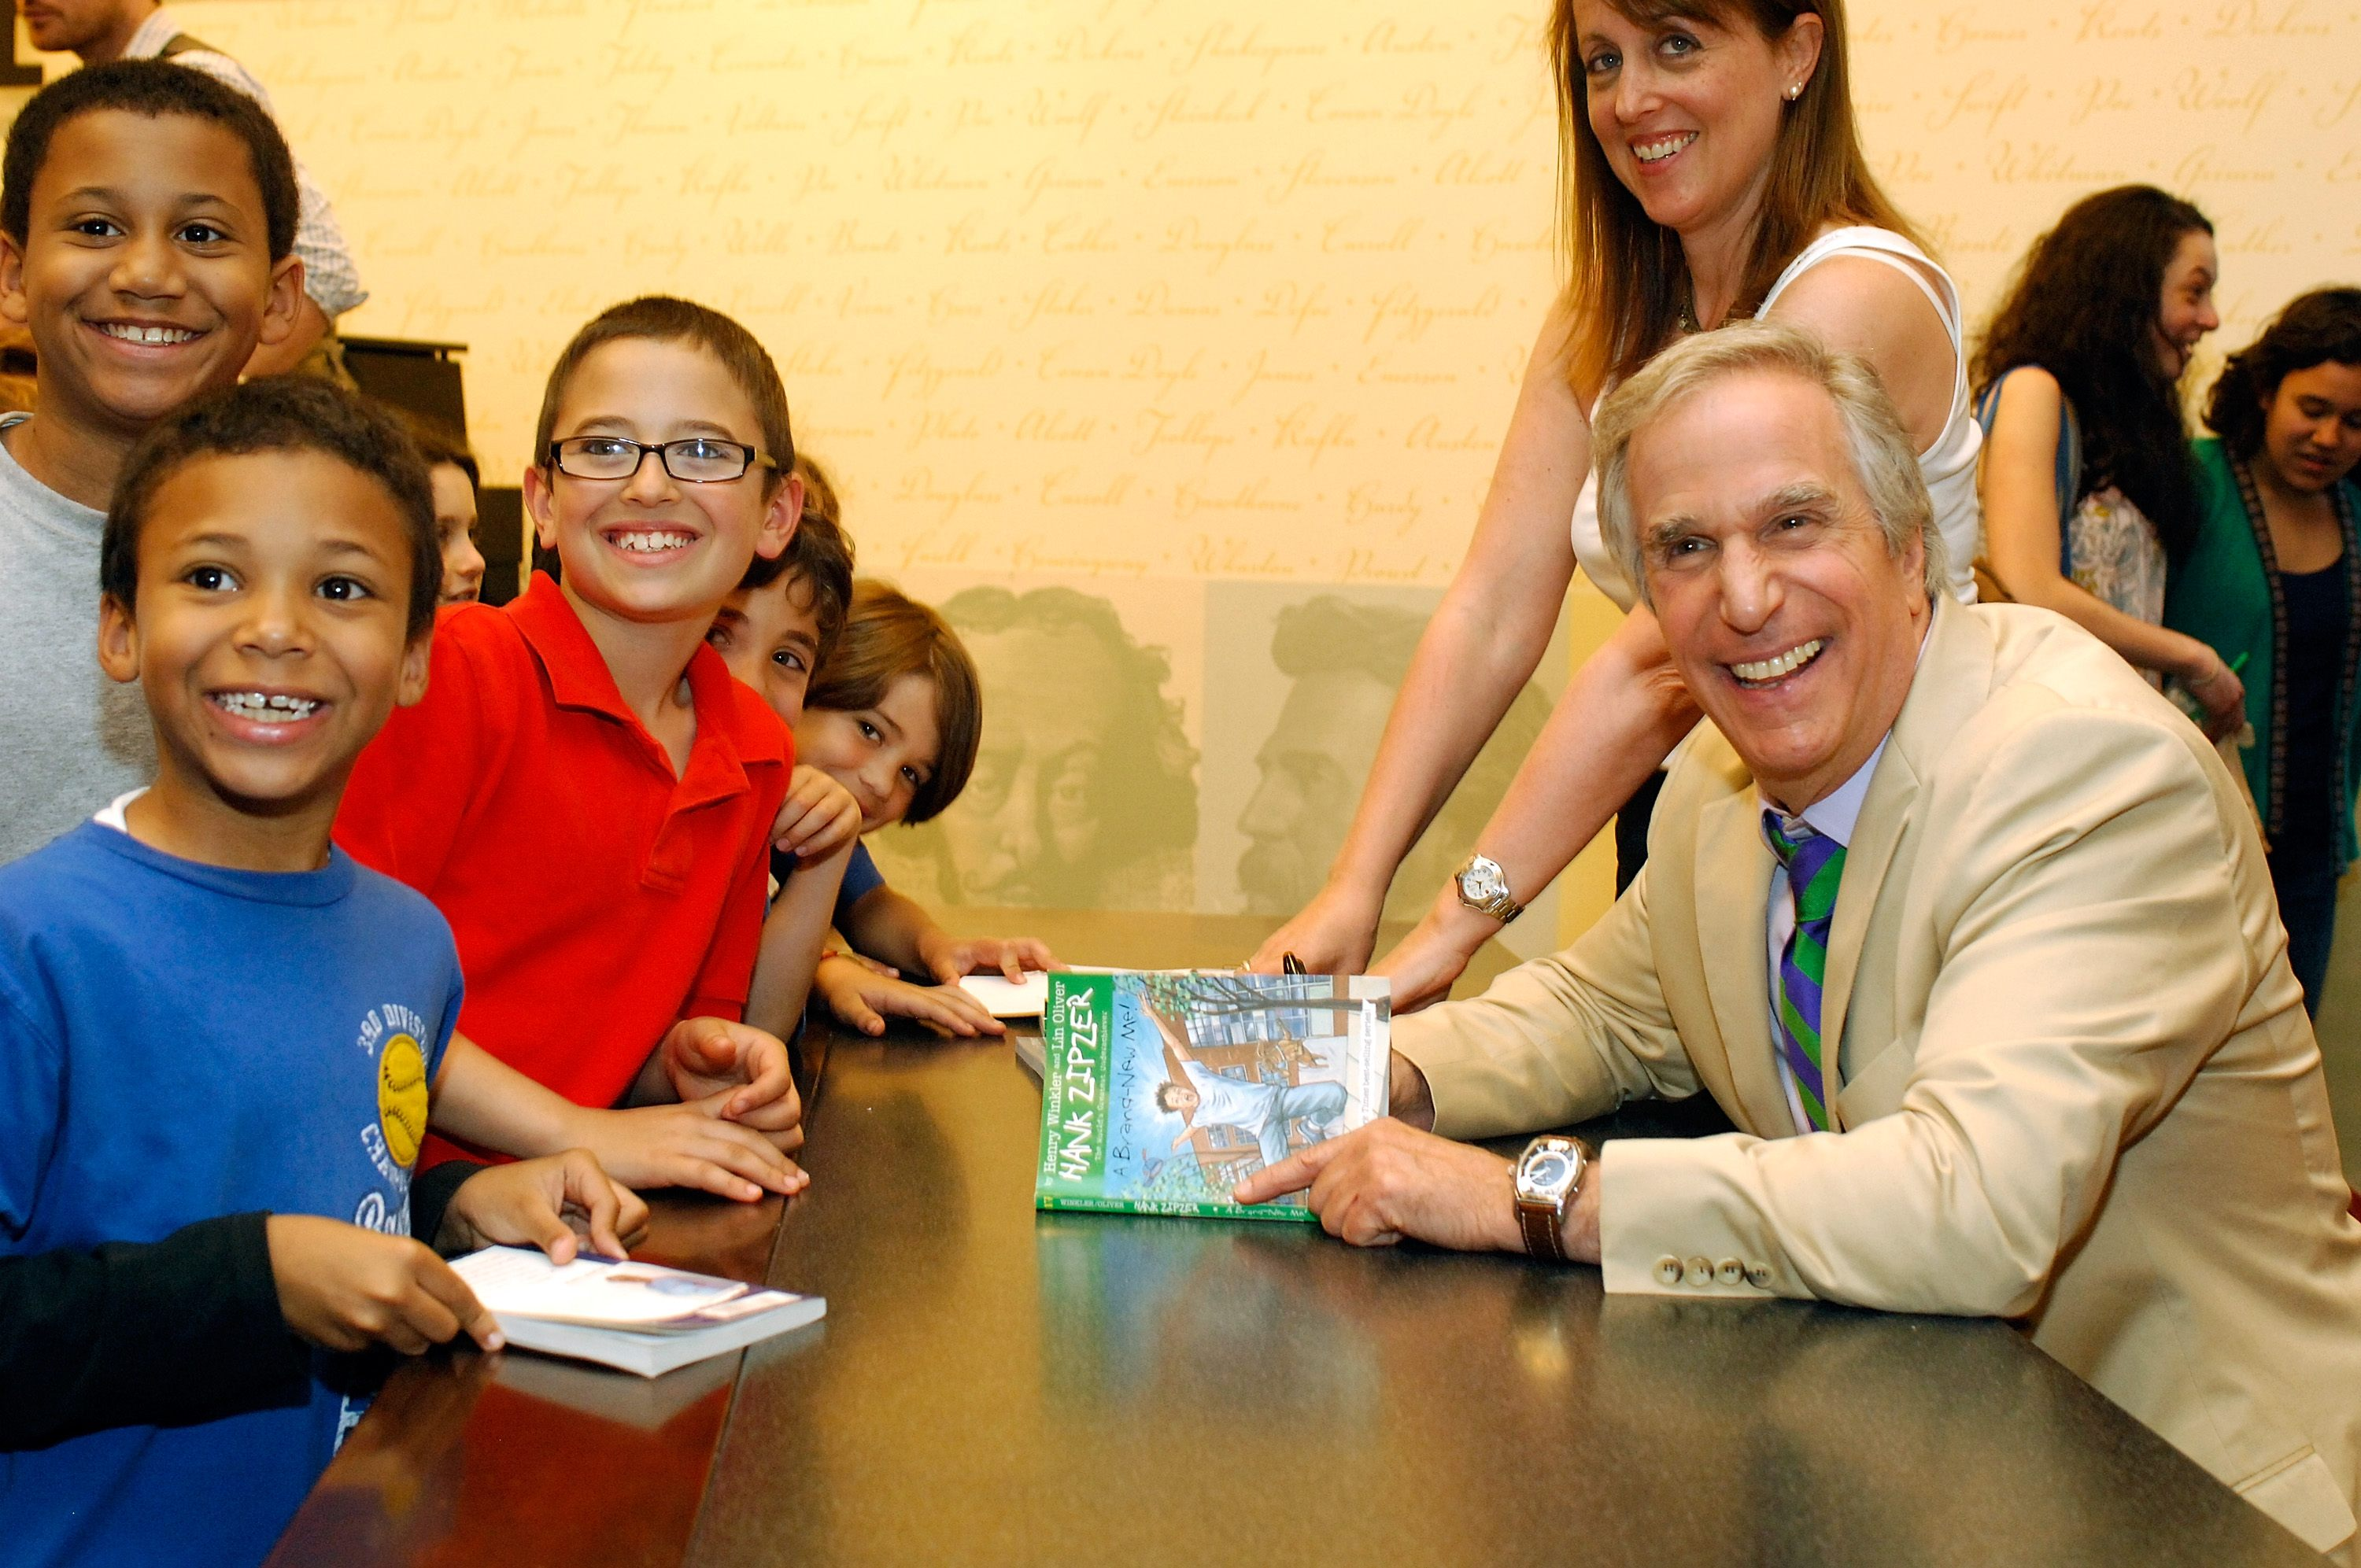 """Author Henry Winkler signs copies of his new book """"A Brand New Me!"""" at Barnes & Noble, Lincoln Triangle on May 7, 2010 in New York City."""